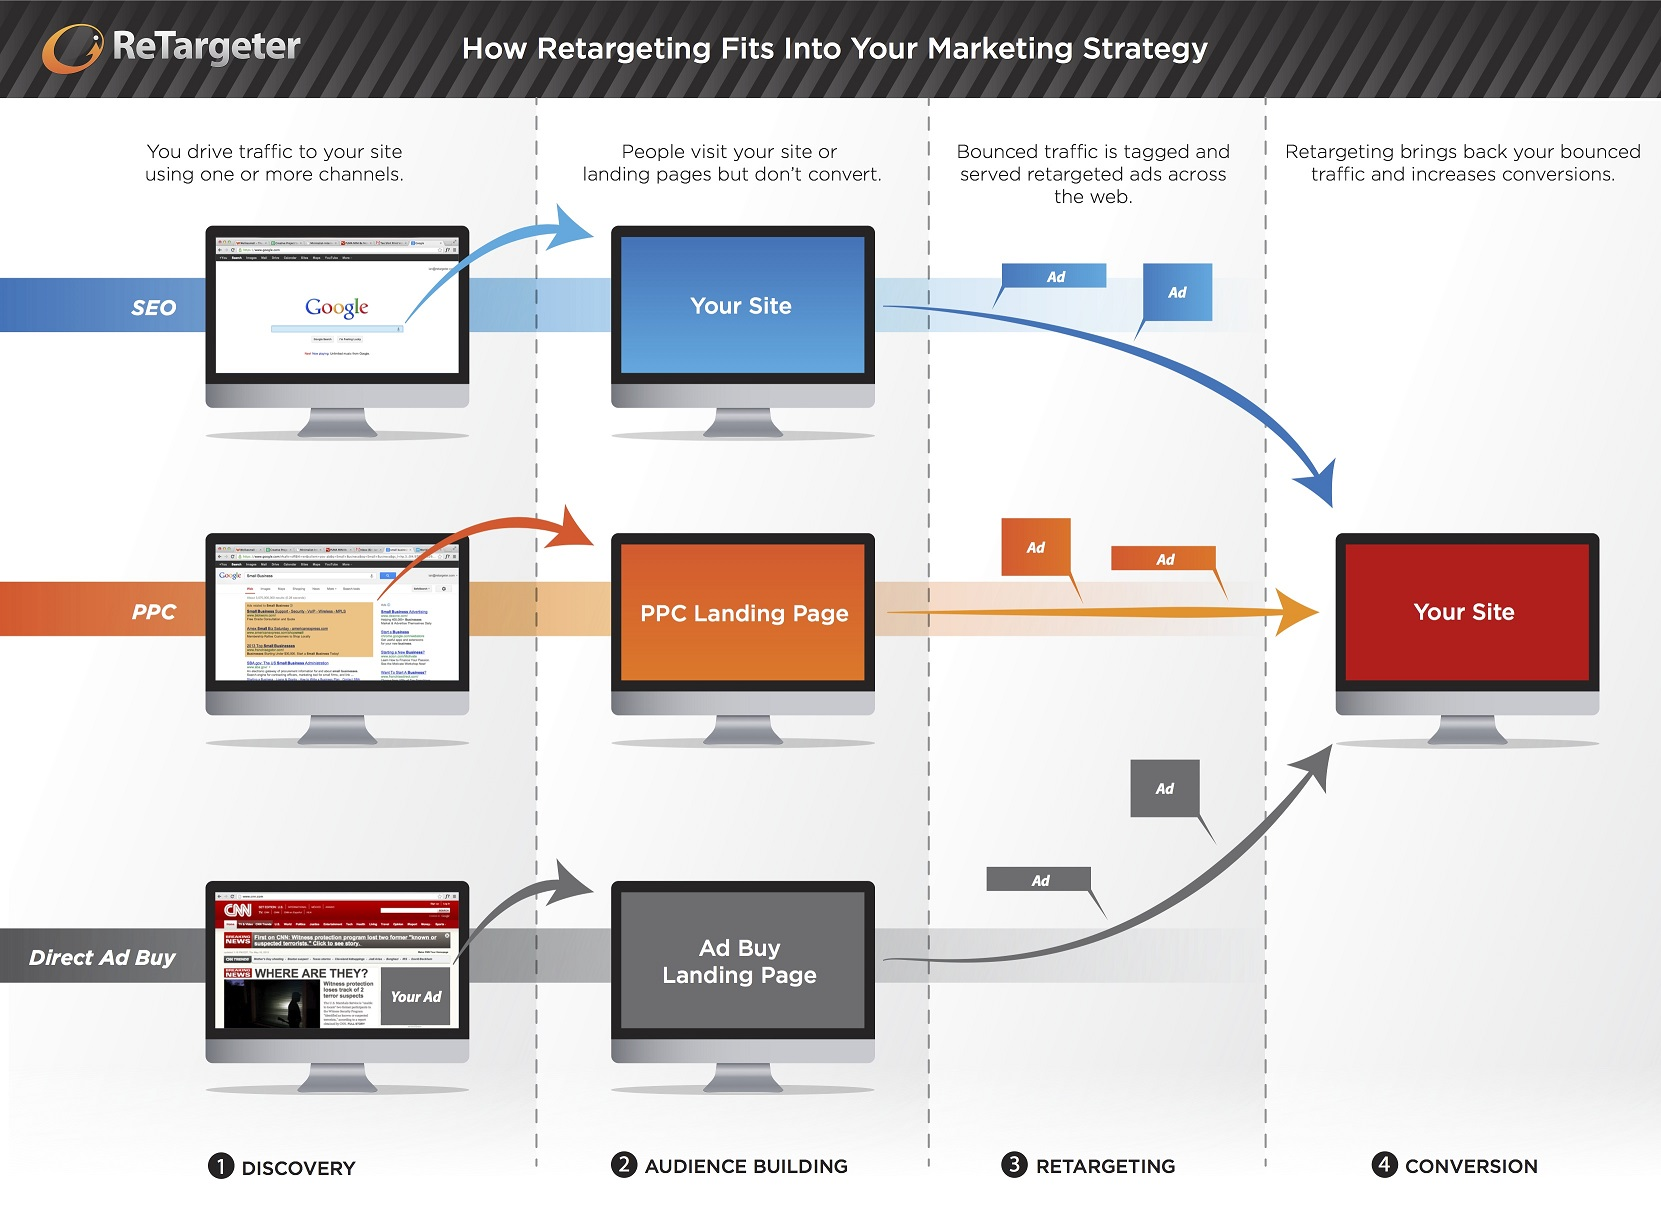 How-Retargeting-Fits-Into-Your-Marketing-Strategy1